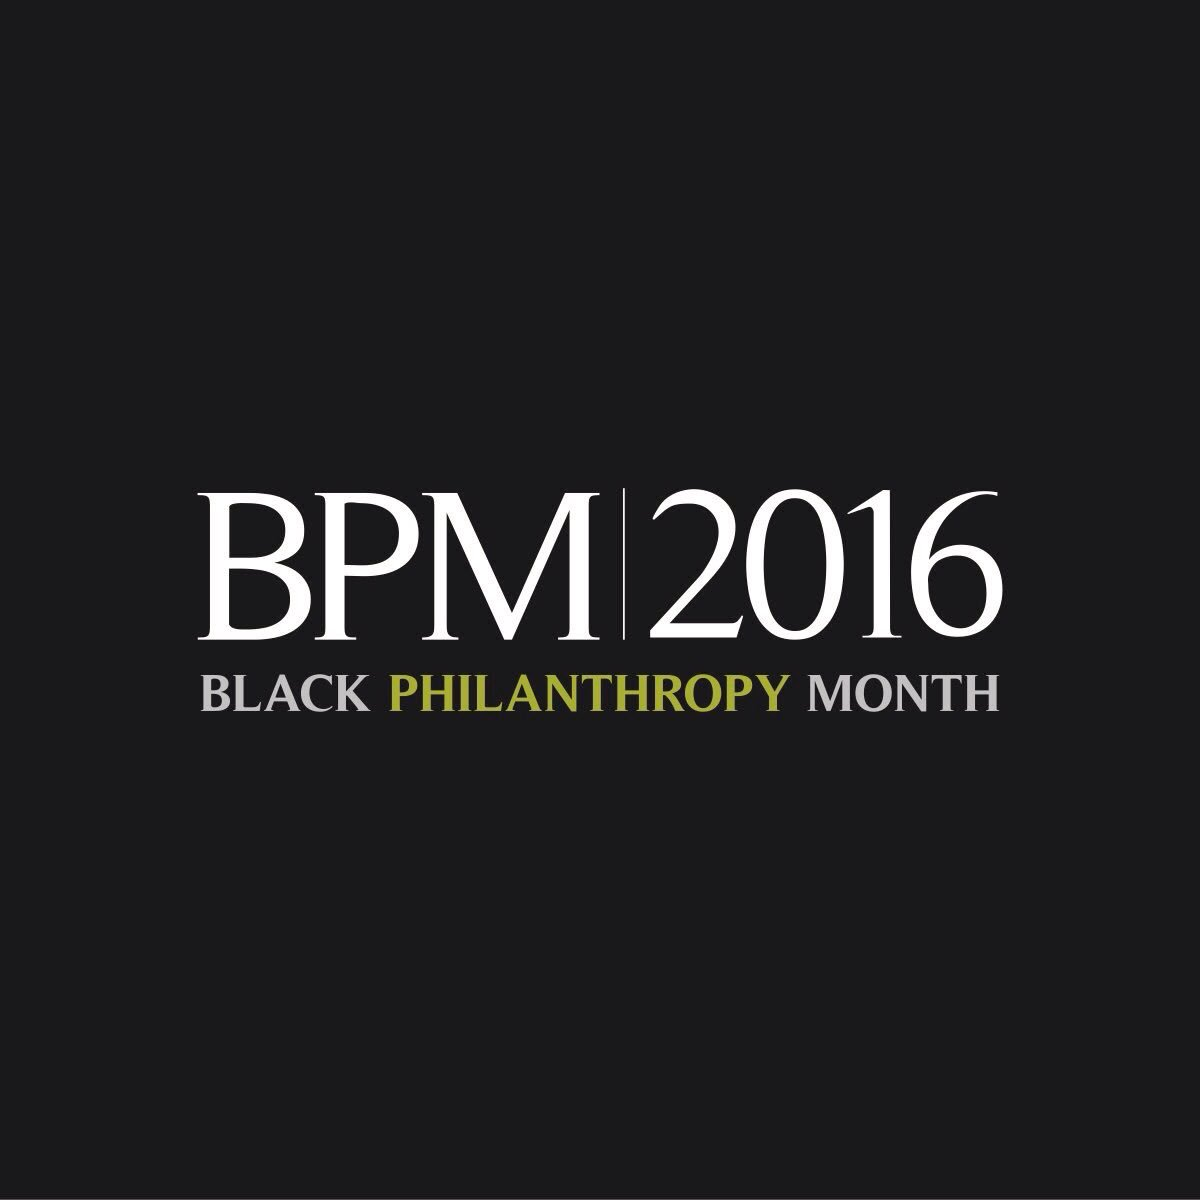 Happy Black Philanthropy Month! #BPM2016 #CHAGives https://t.co/jQ5PohdYNX